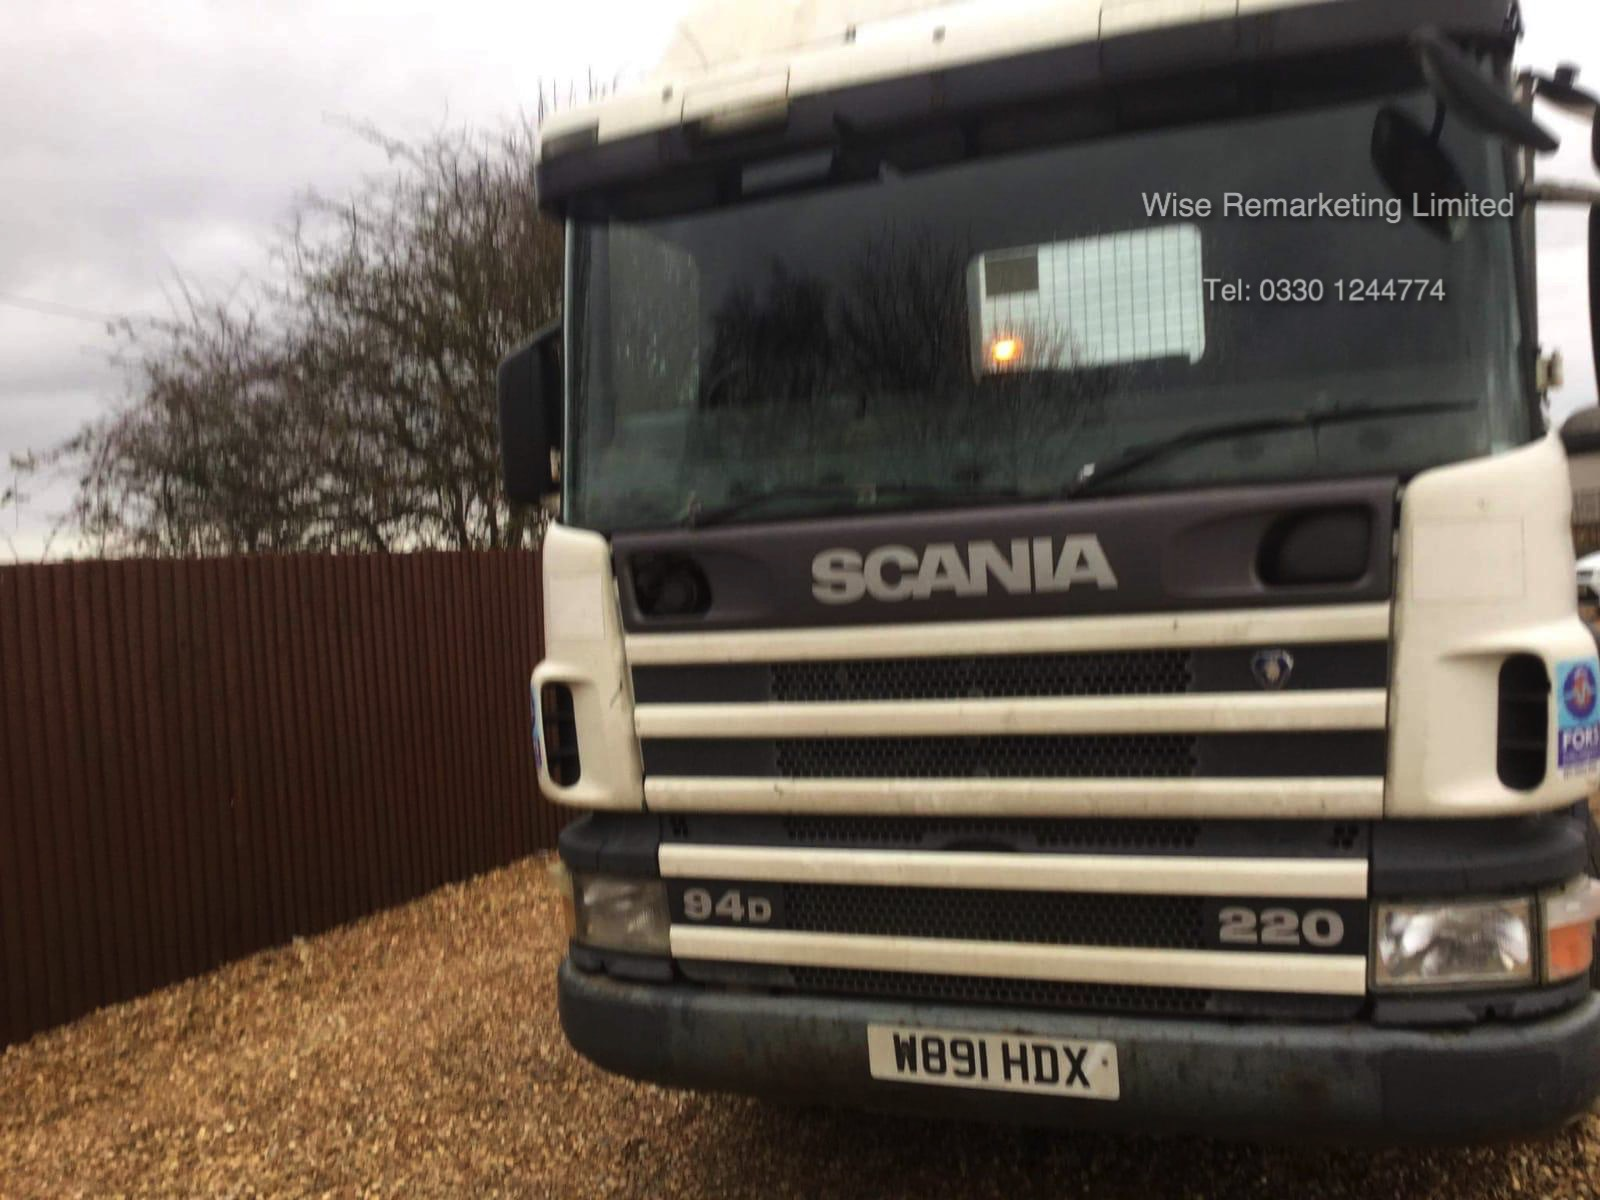 (Reserve Met) Scania 94d.220 18 Tonne 4x2 Flat Bed Lorry - W Reg 2000 Year - SAVE 20% NO VAT - Image 11 of 30